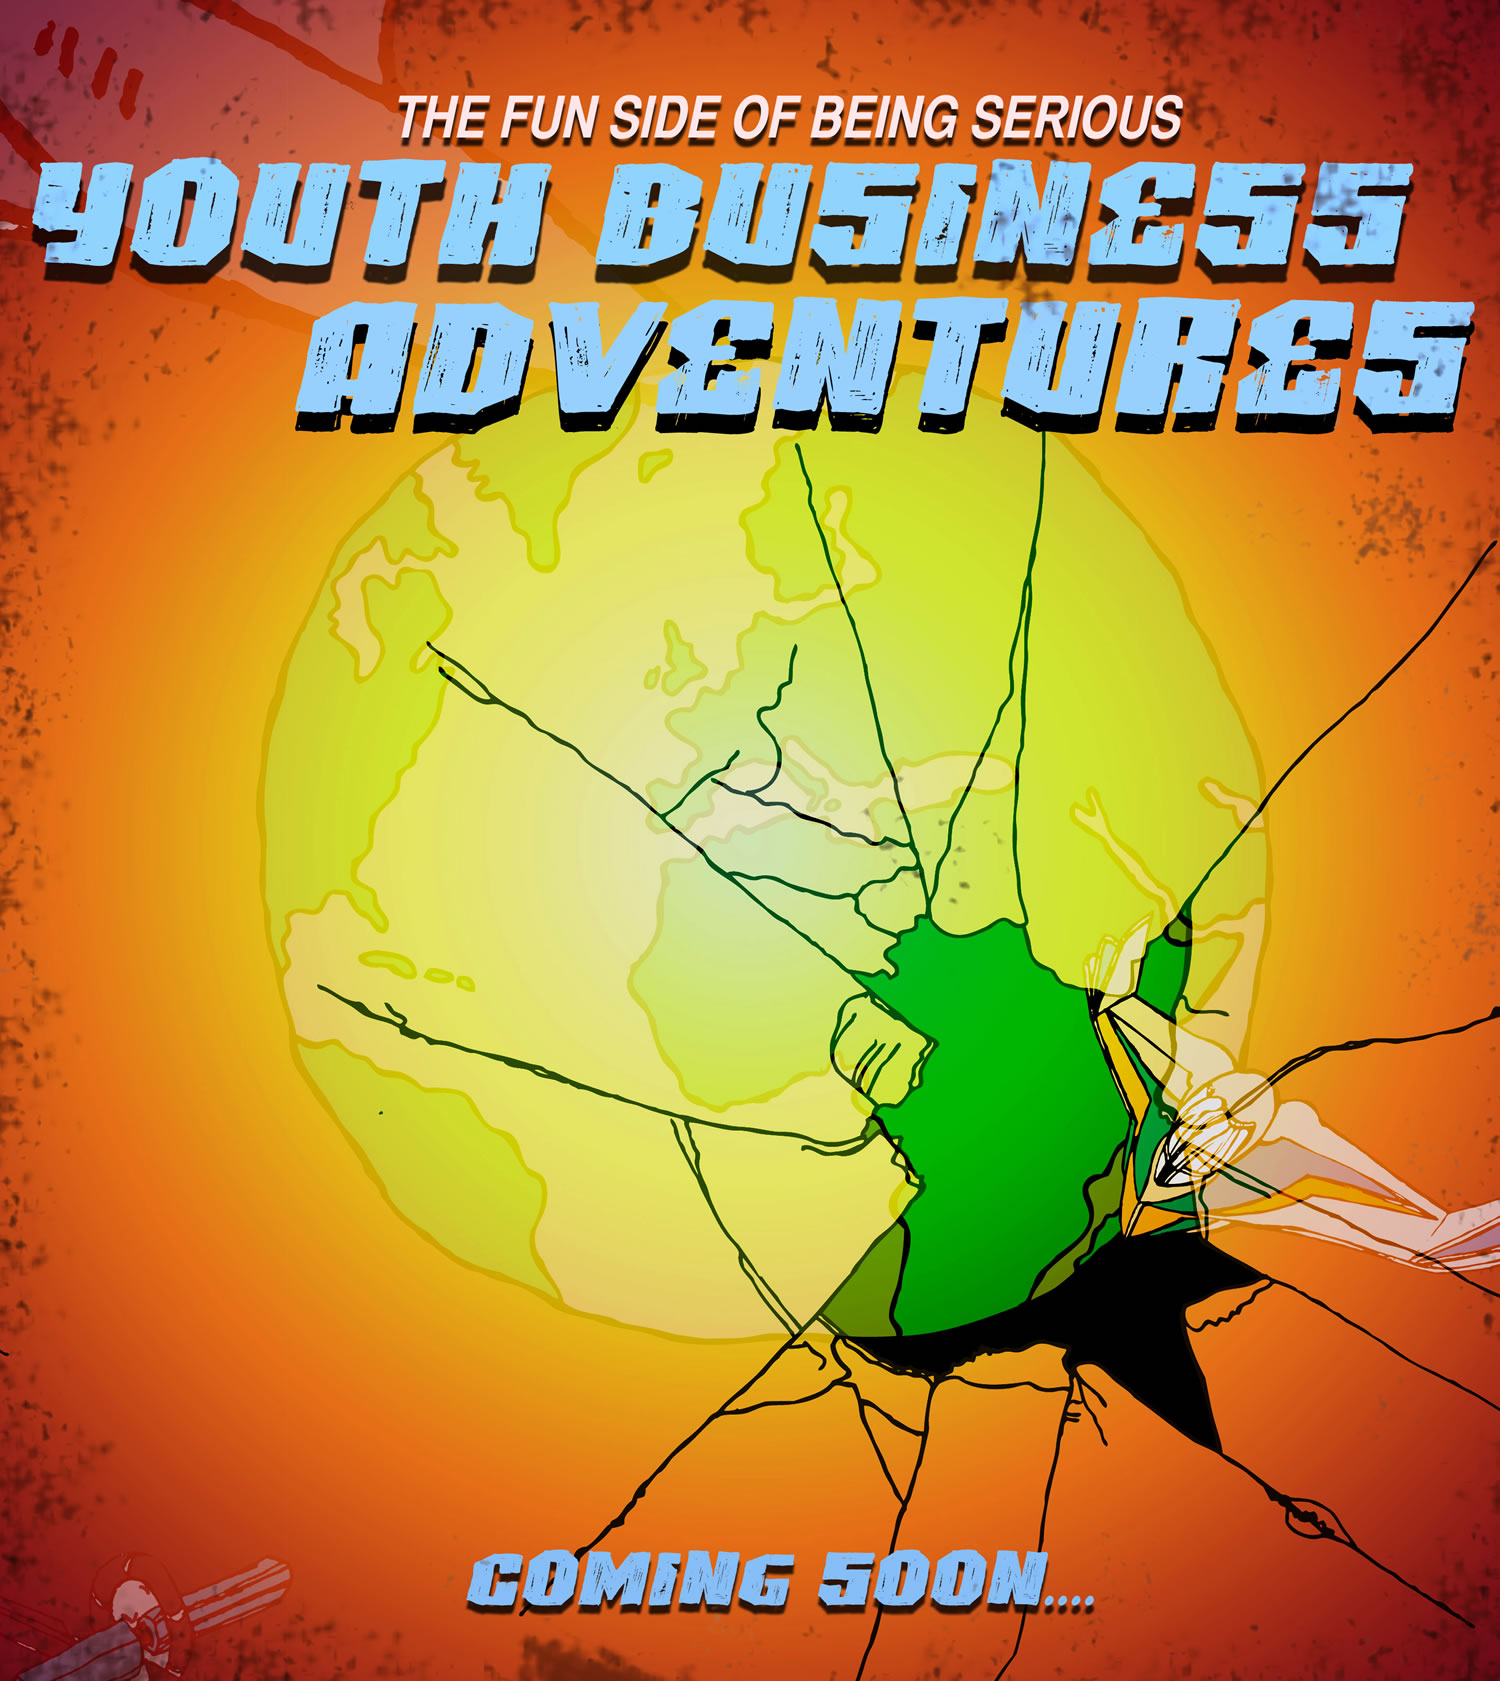 Coming Soon Youth Business Adventures teaser poster from the Fun Side of Being Serious book series